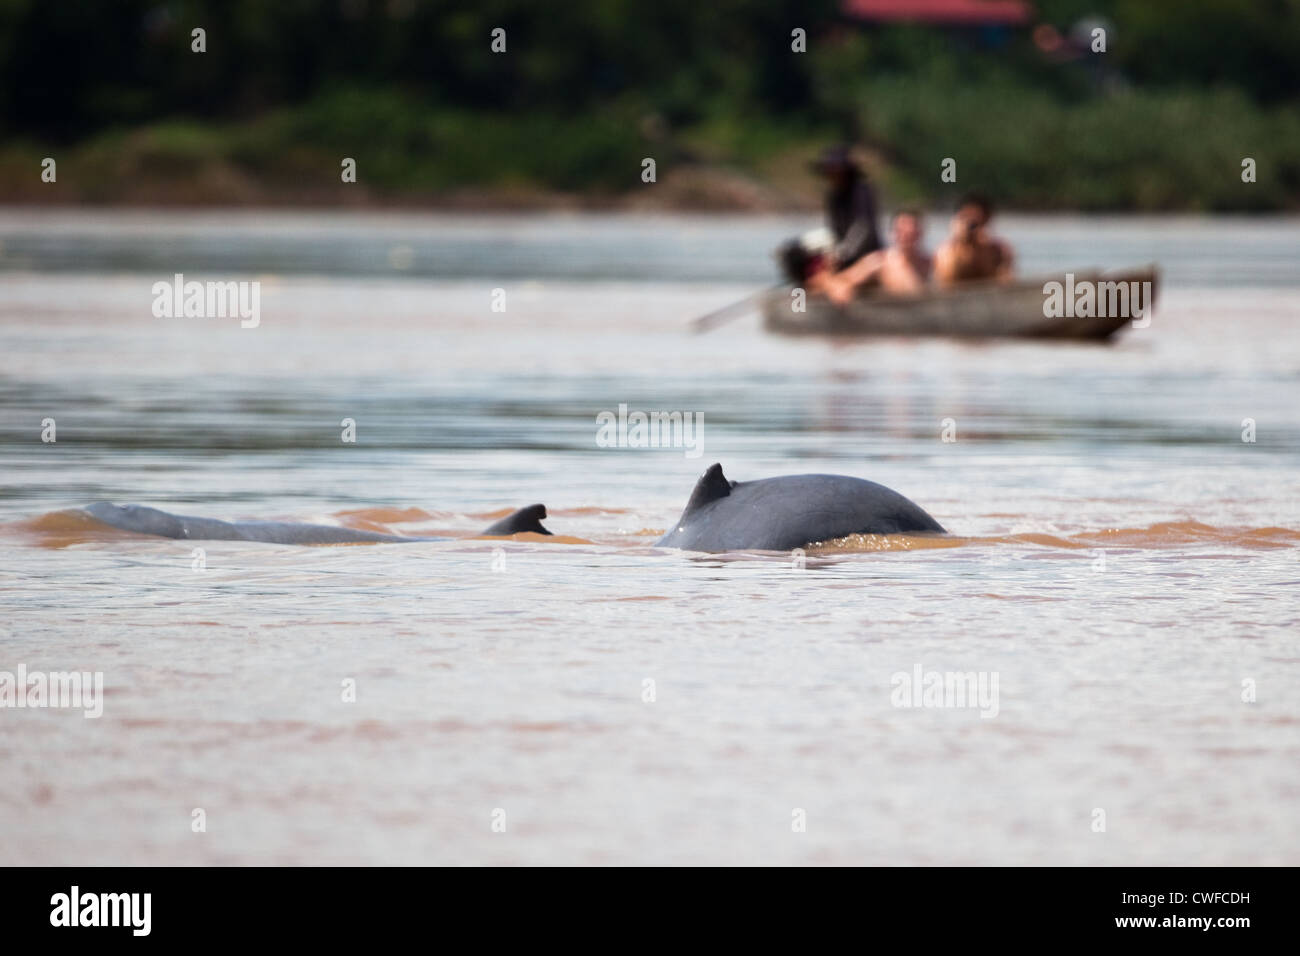 Irrawaddy dolphin watching in the Mekong River - Stock Image